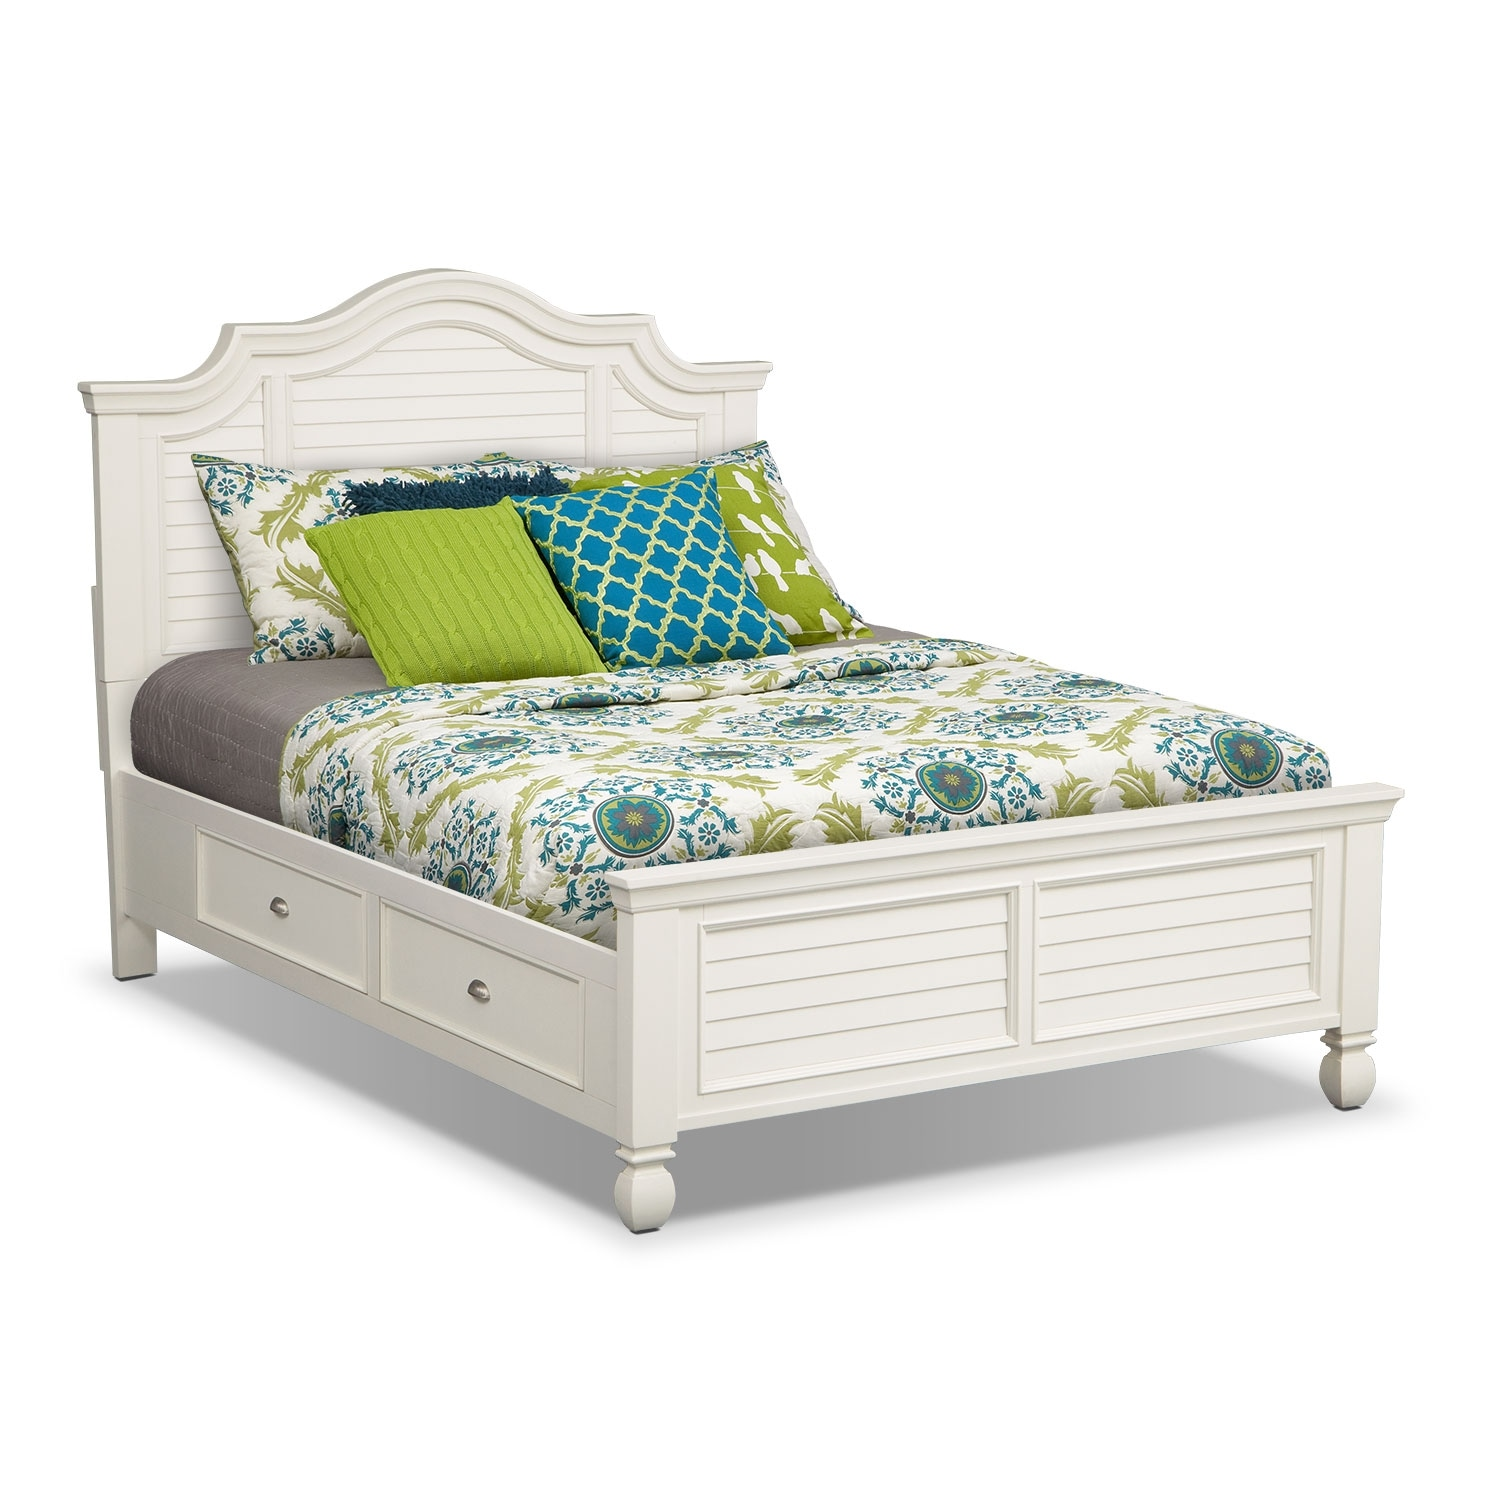 Plantation Cove King Storage Bed - White